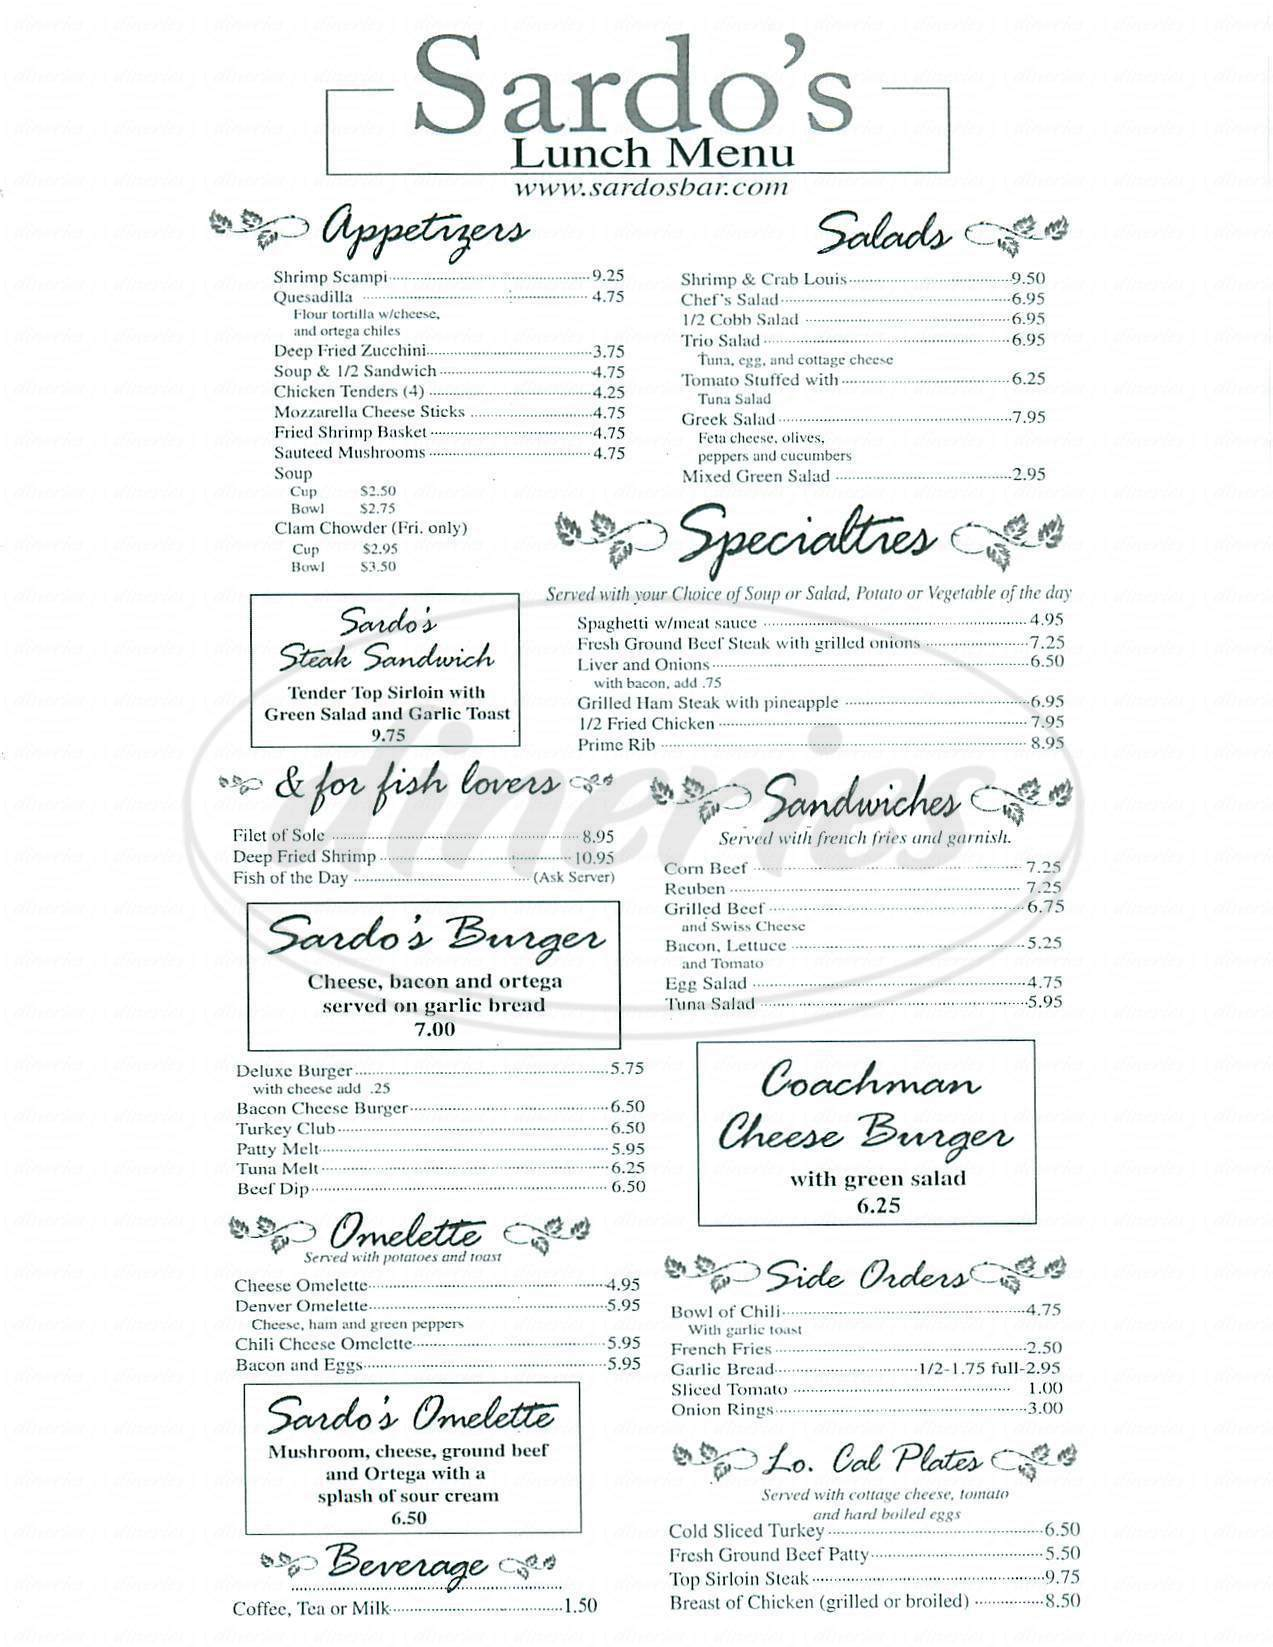 menu for Sardo's Restaurant